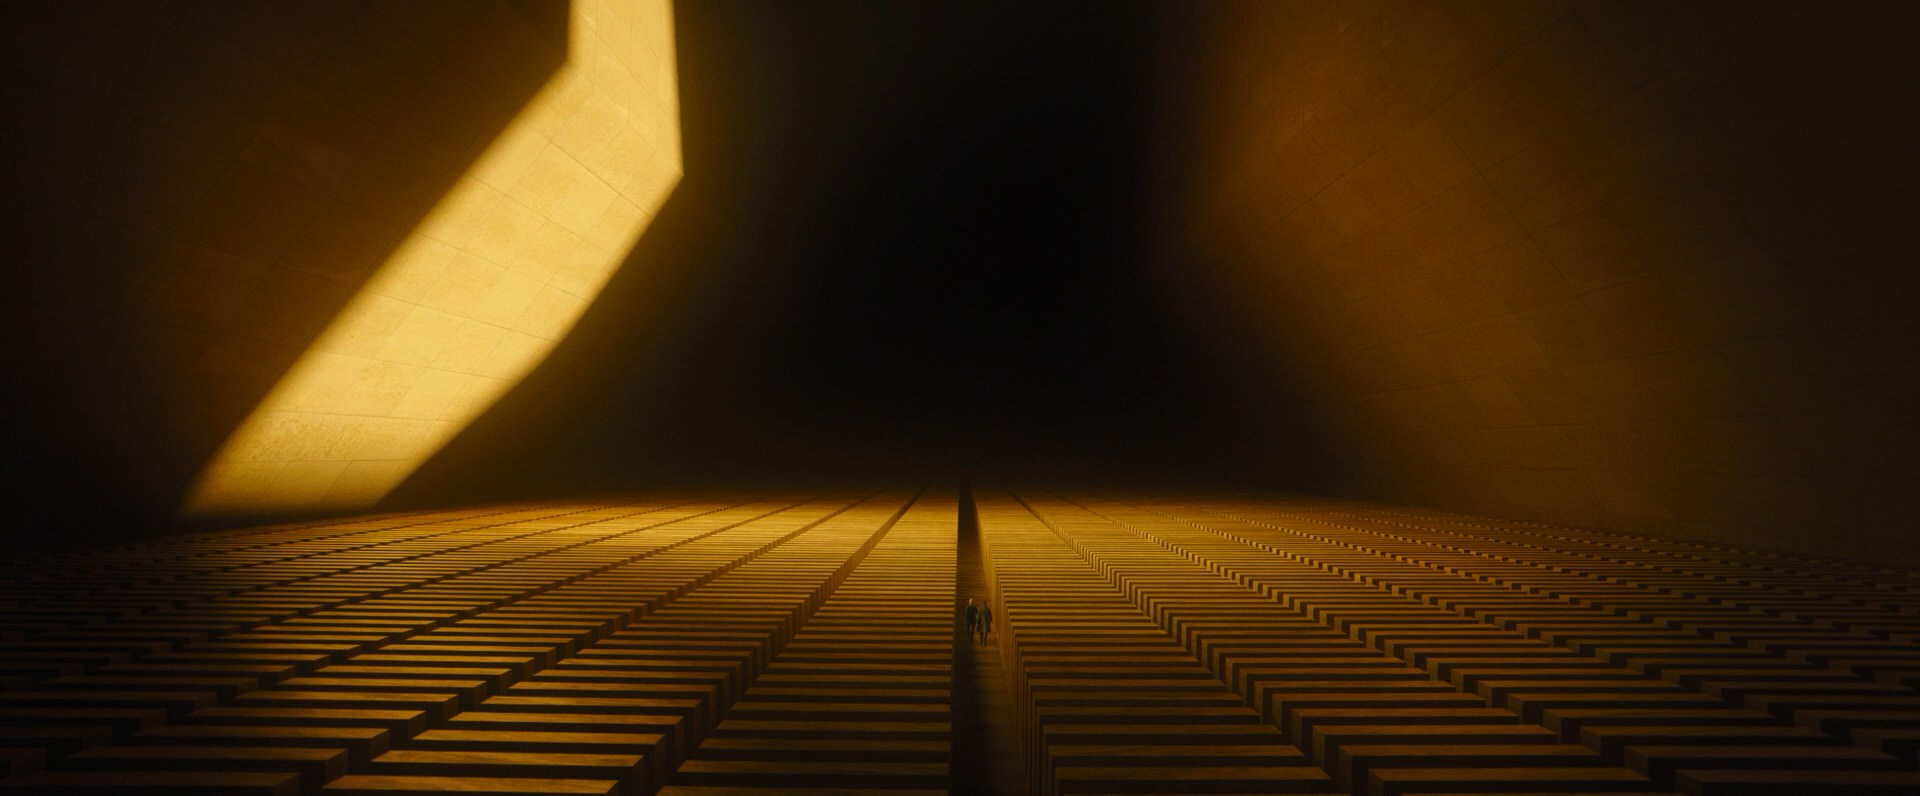 Blade Runner 2049 Wallpaper Phone Posted By Christopher Sellers